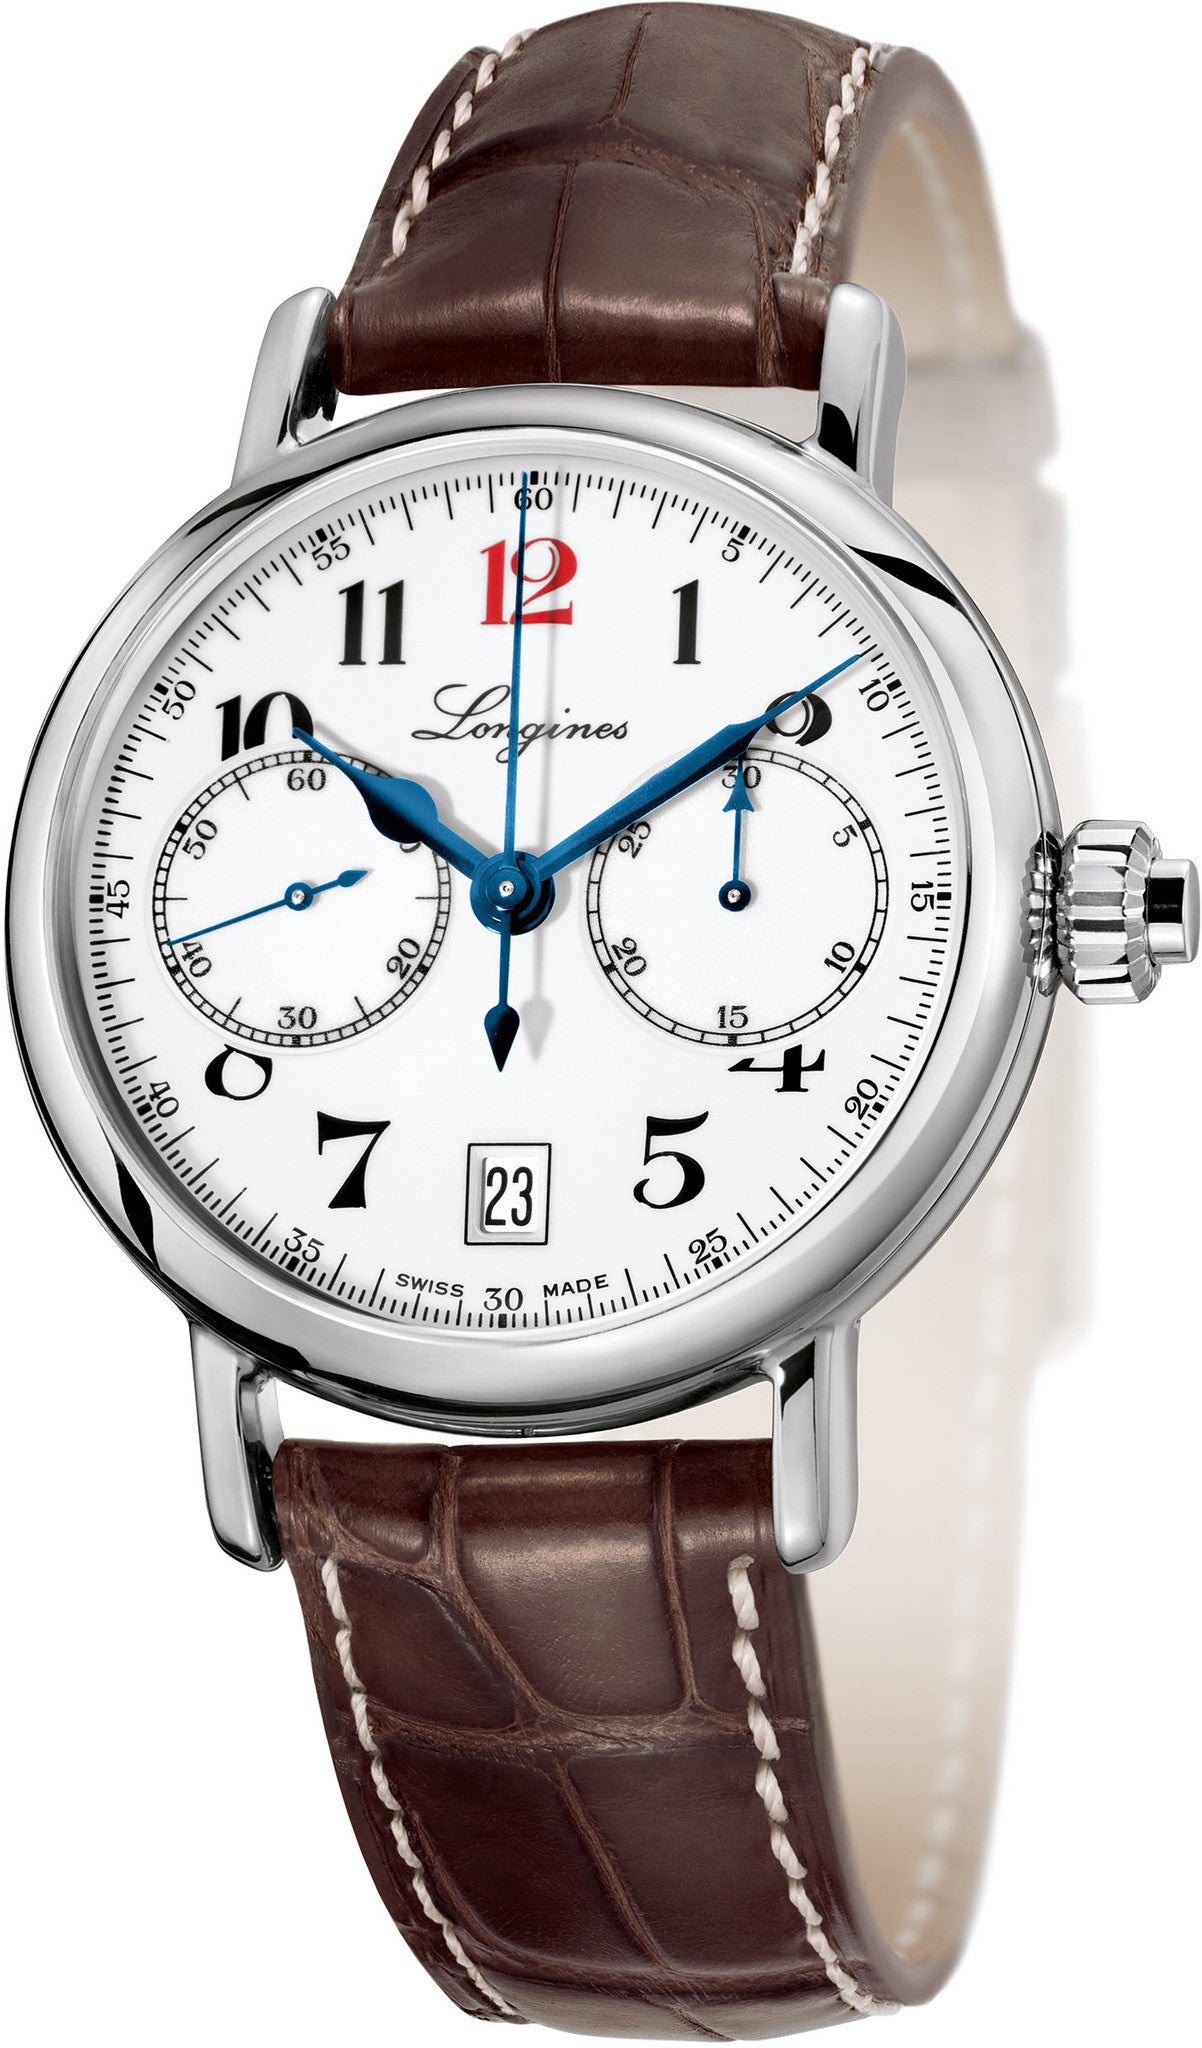 Longines Watch Column Wheel Chronograph